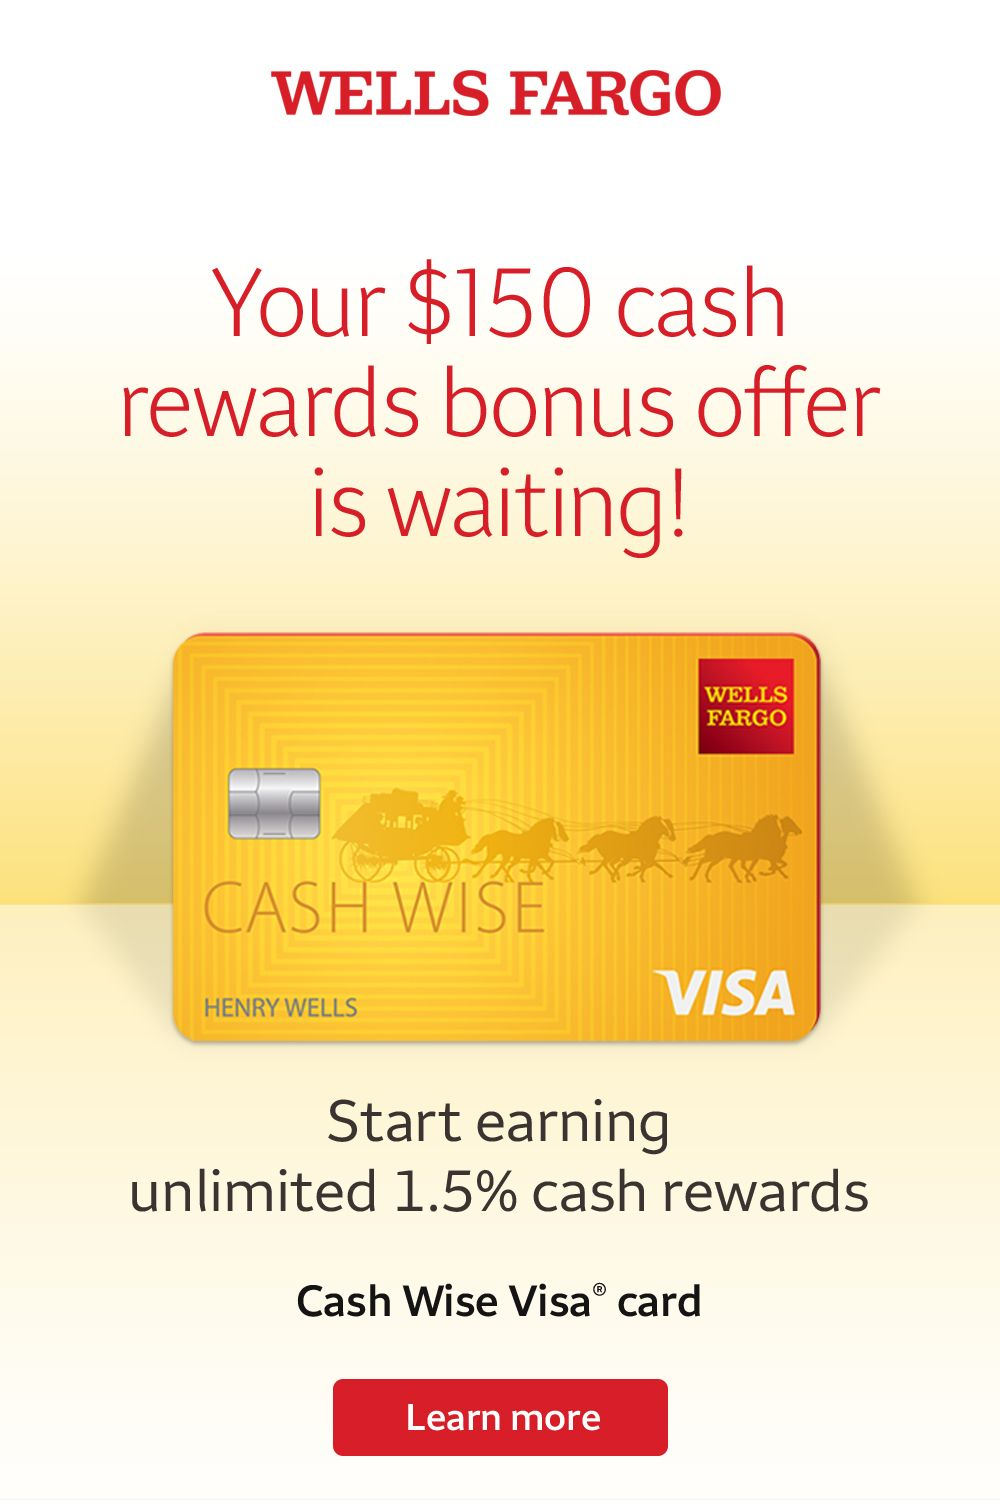 Apply For And Use Your Wells Fargo Cash Wise Visa Card On Everything From Groceries To Gas Clothing To Cuisine Travel To Streami In 2020 Wells Fargo Visa Card Fargo